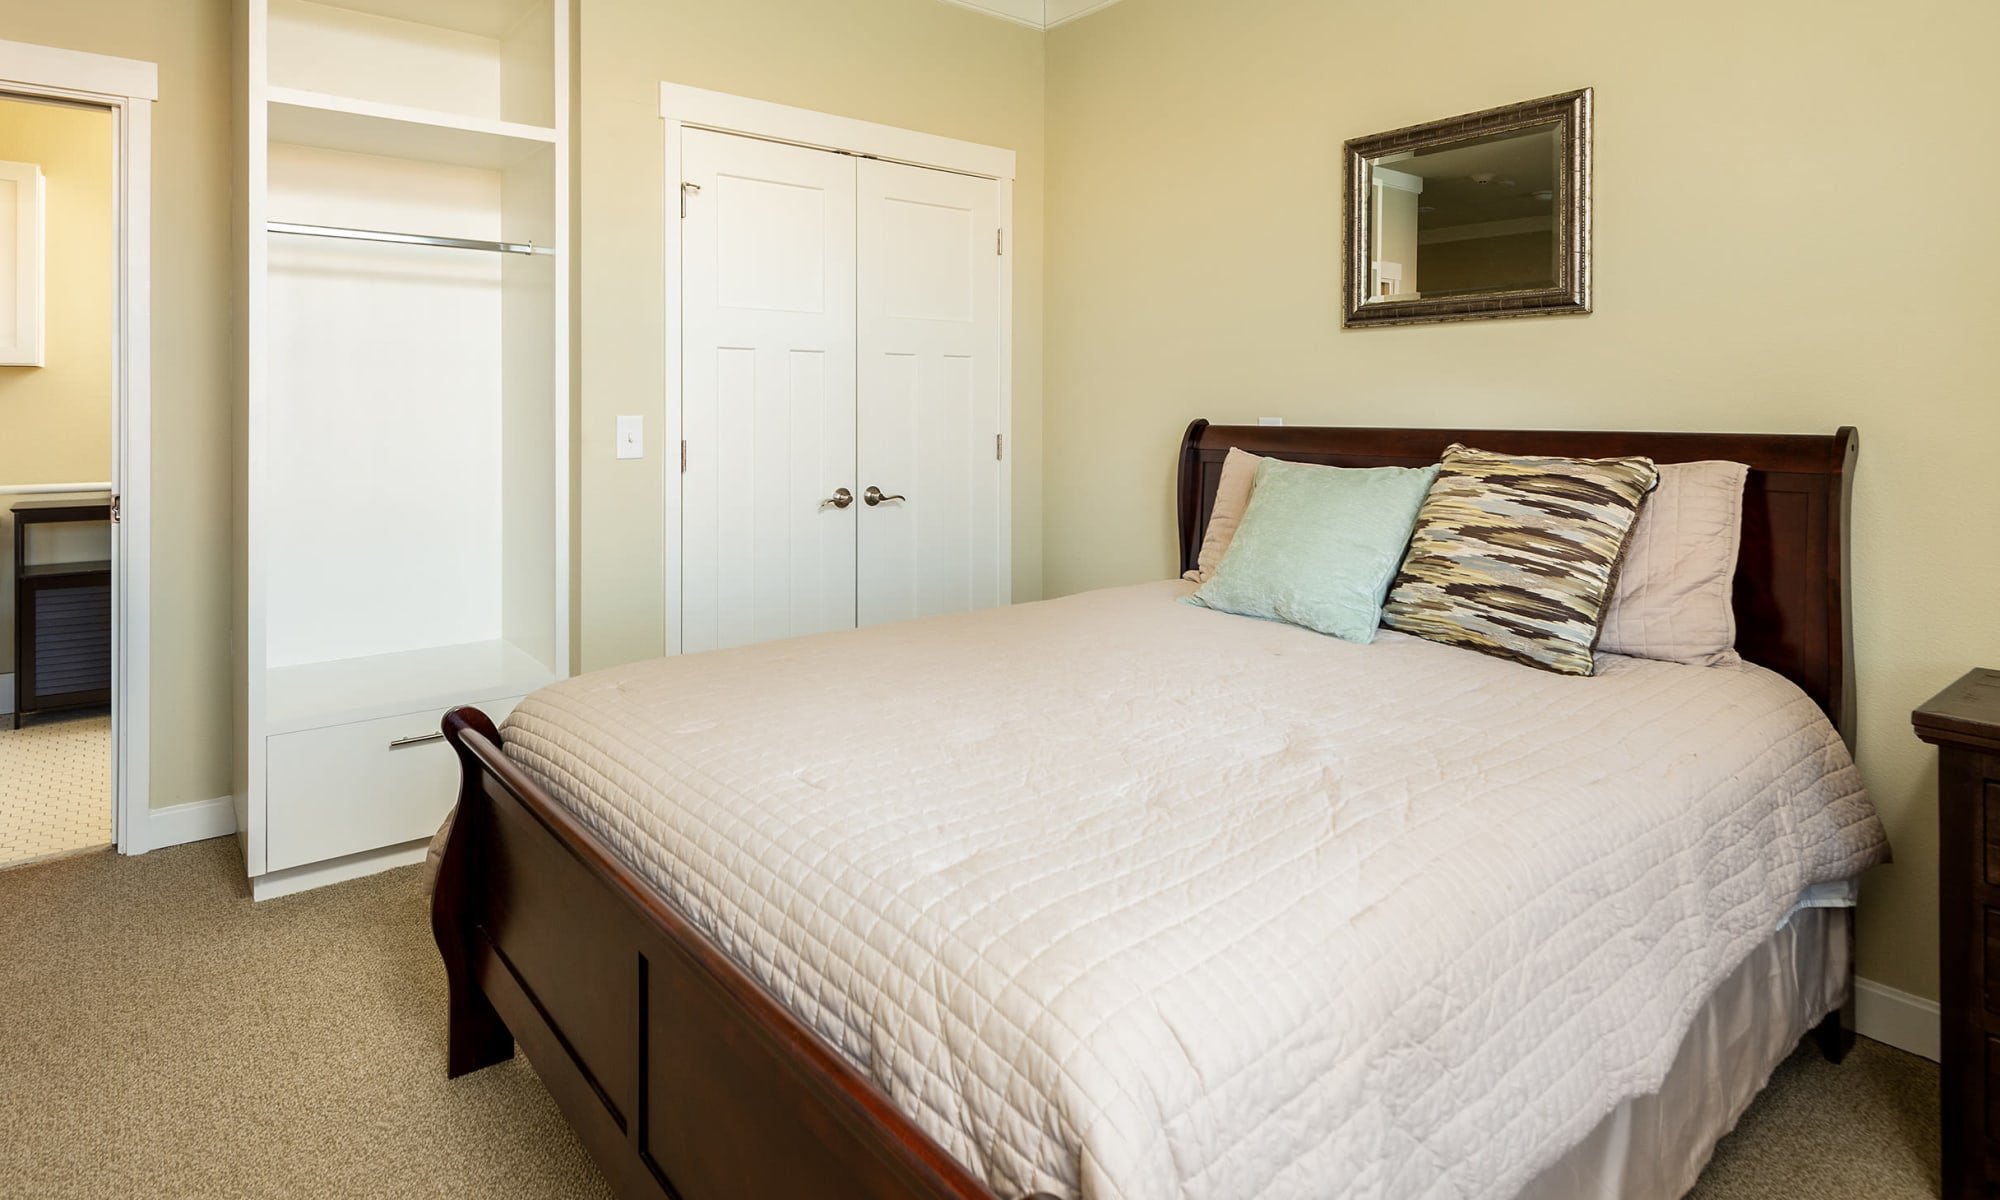 Private bedroom at MacArthur Hills in Irving, Texas